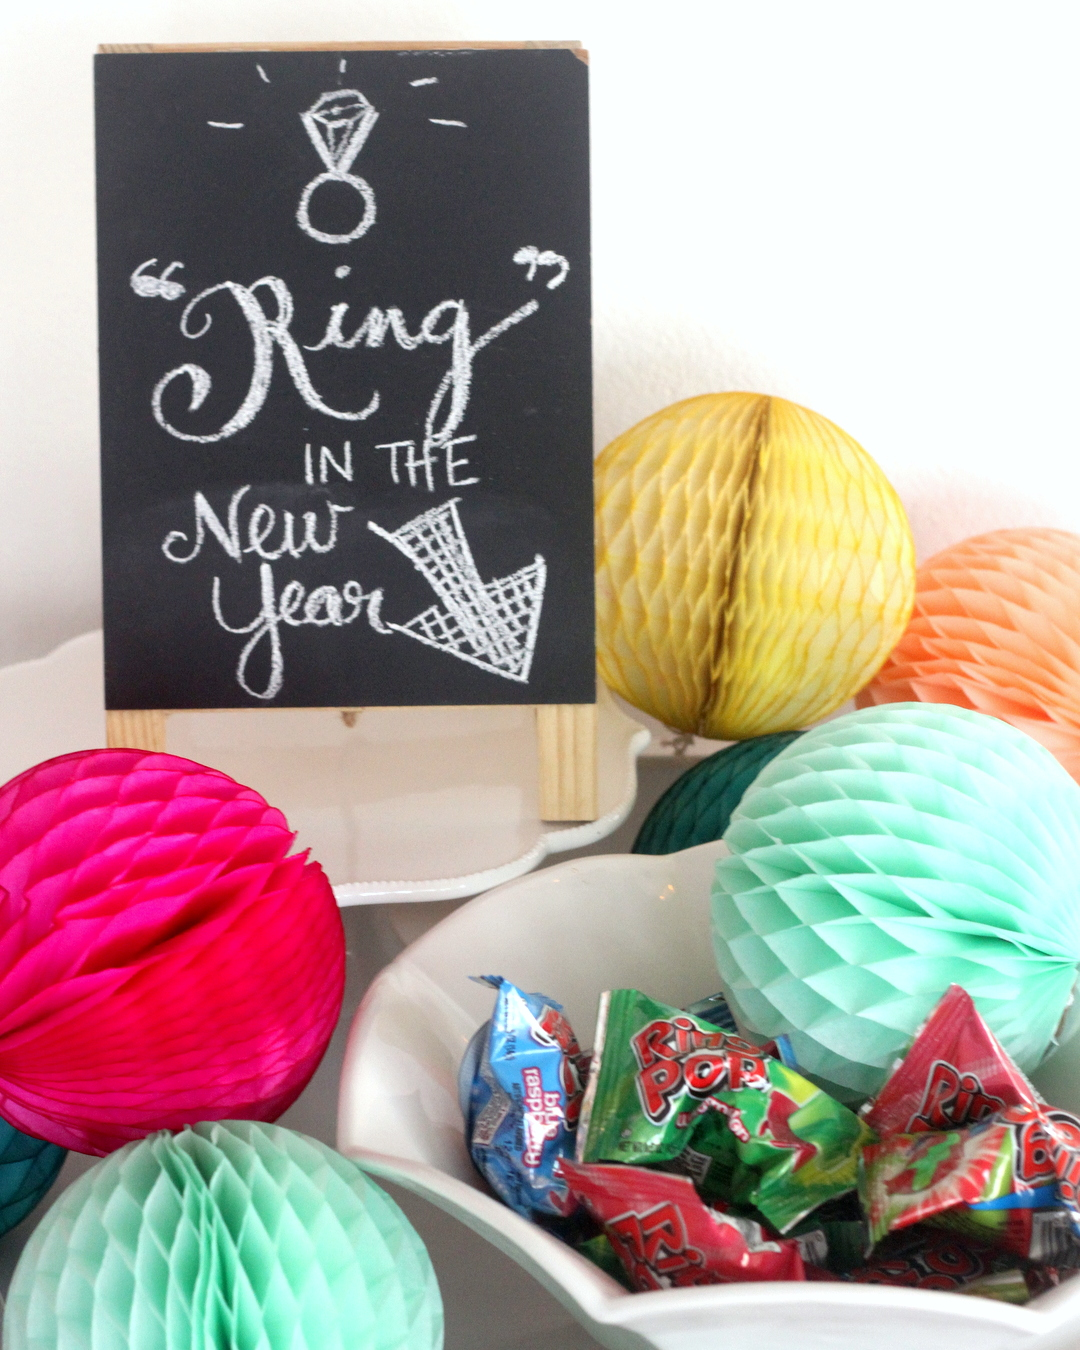 Put together a festive (and EASY!) New Year's Eve party with these ideas (including a Confetti Bar how-to!)